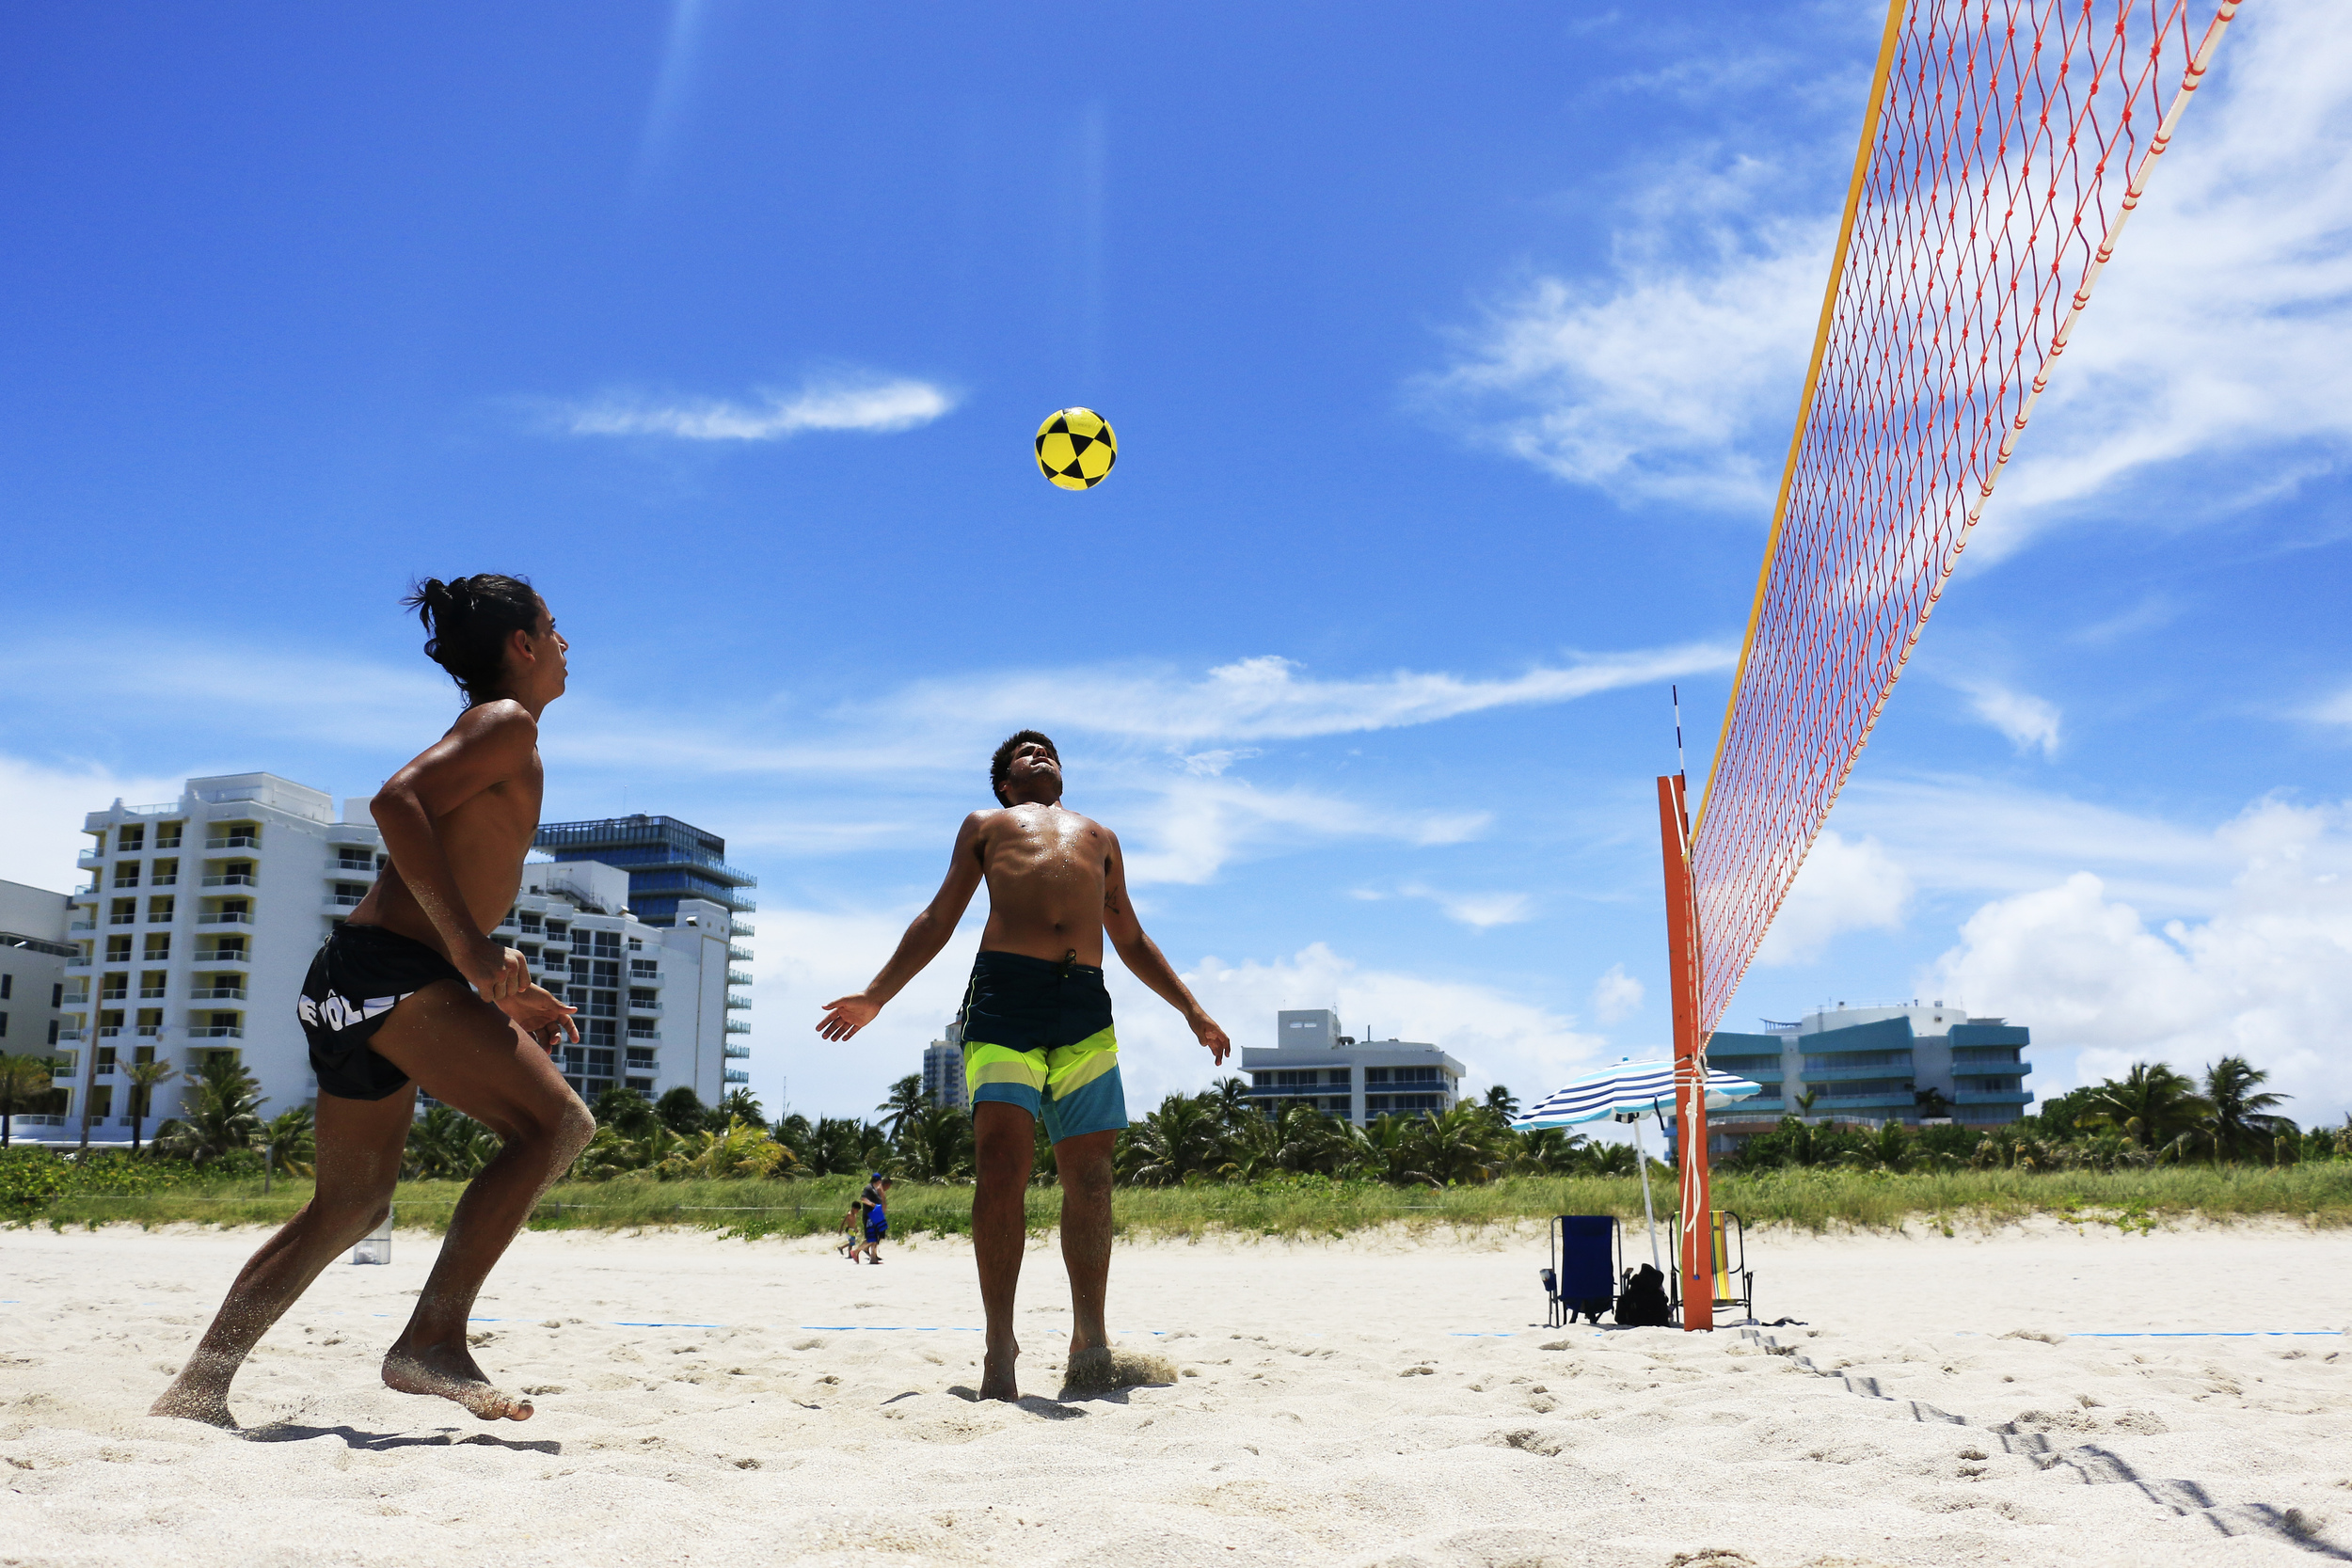 Diogo Nanni of Rio De Janeiro, Brazil, chests the ball while his teammate Gabriel Bonilla watches during a game of foot volley on South Beach during Fourth of July festivities.